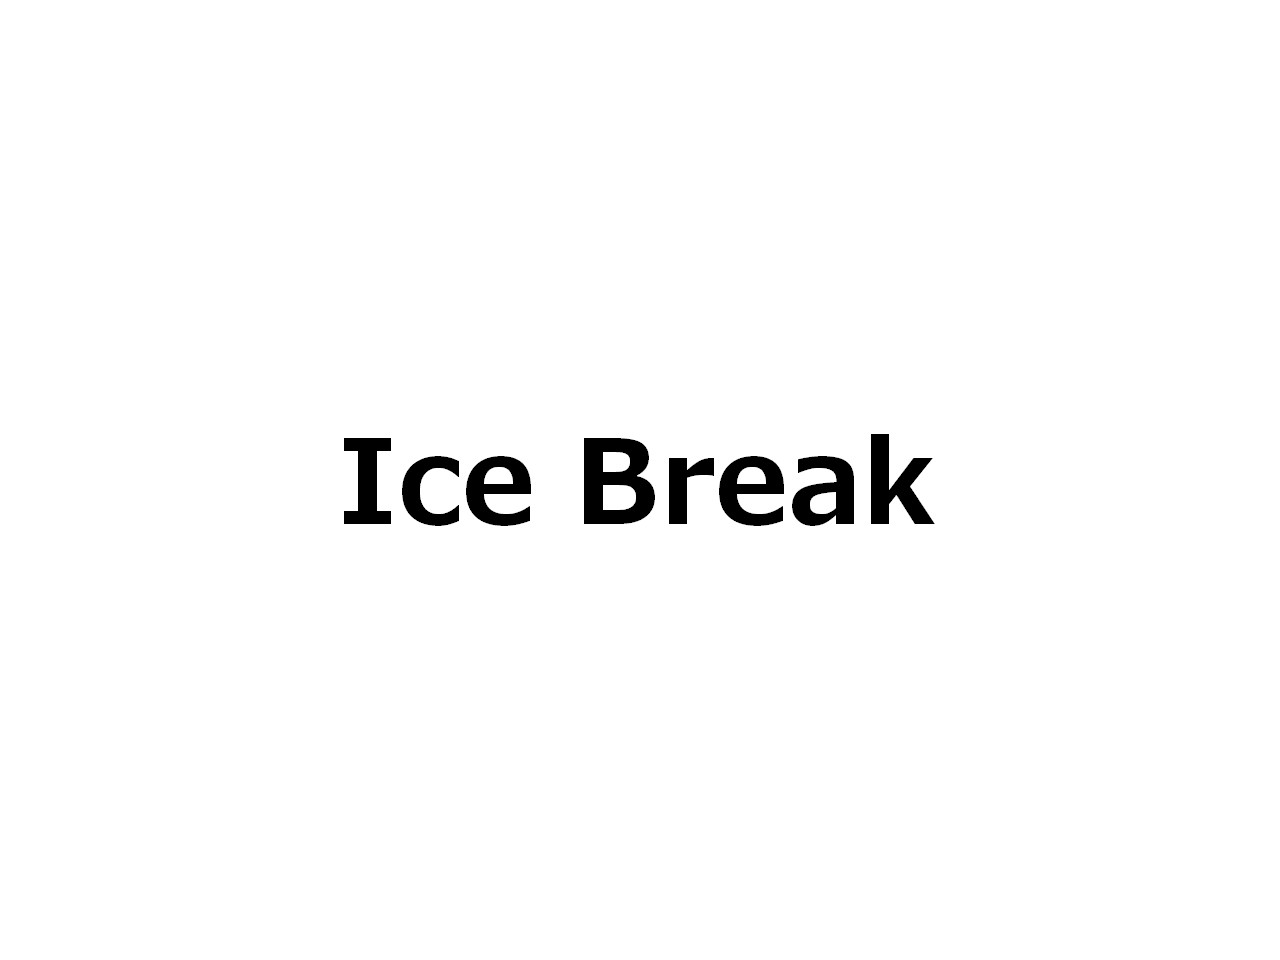 Ice Break